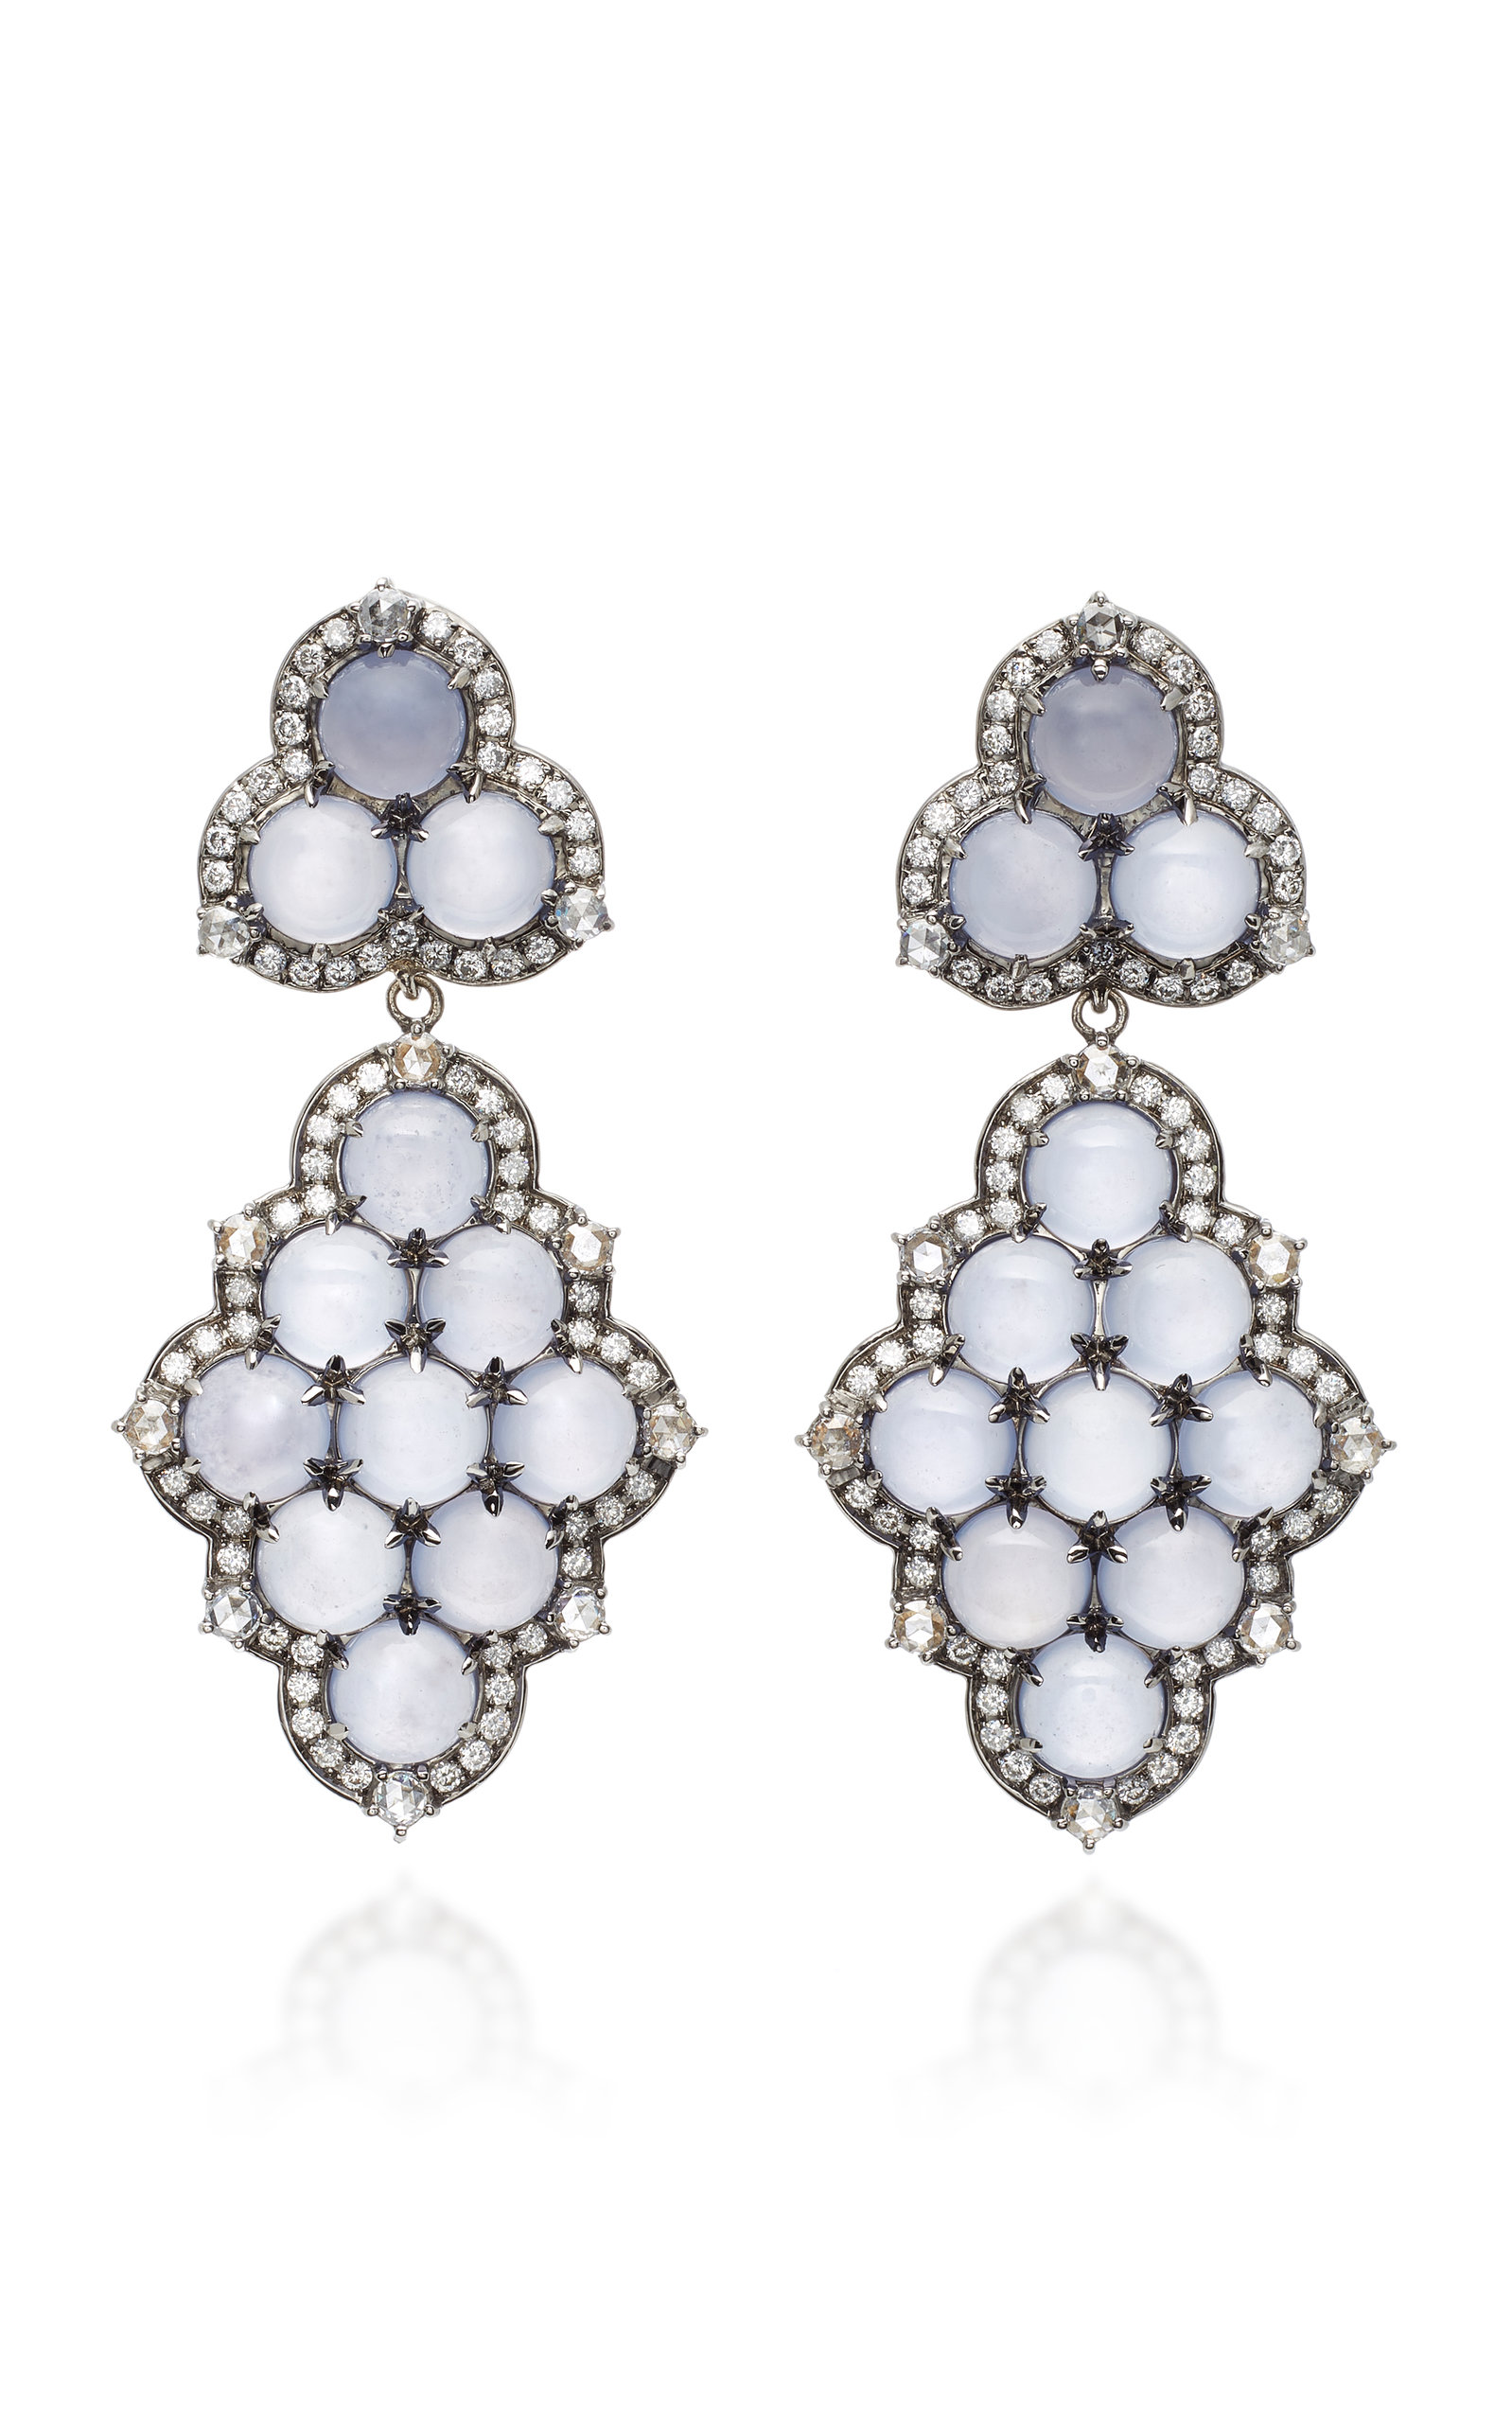 NAM CHO Detachable 18K White Gold Black Rhodium Chalcedony And Diamond Earrings in Blue